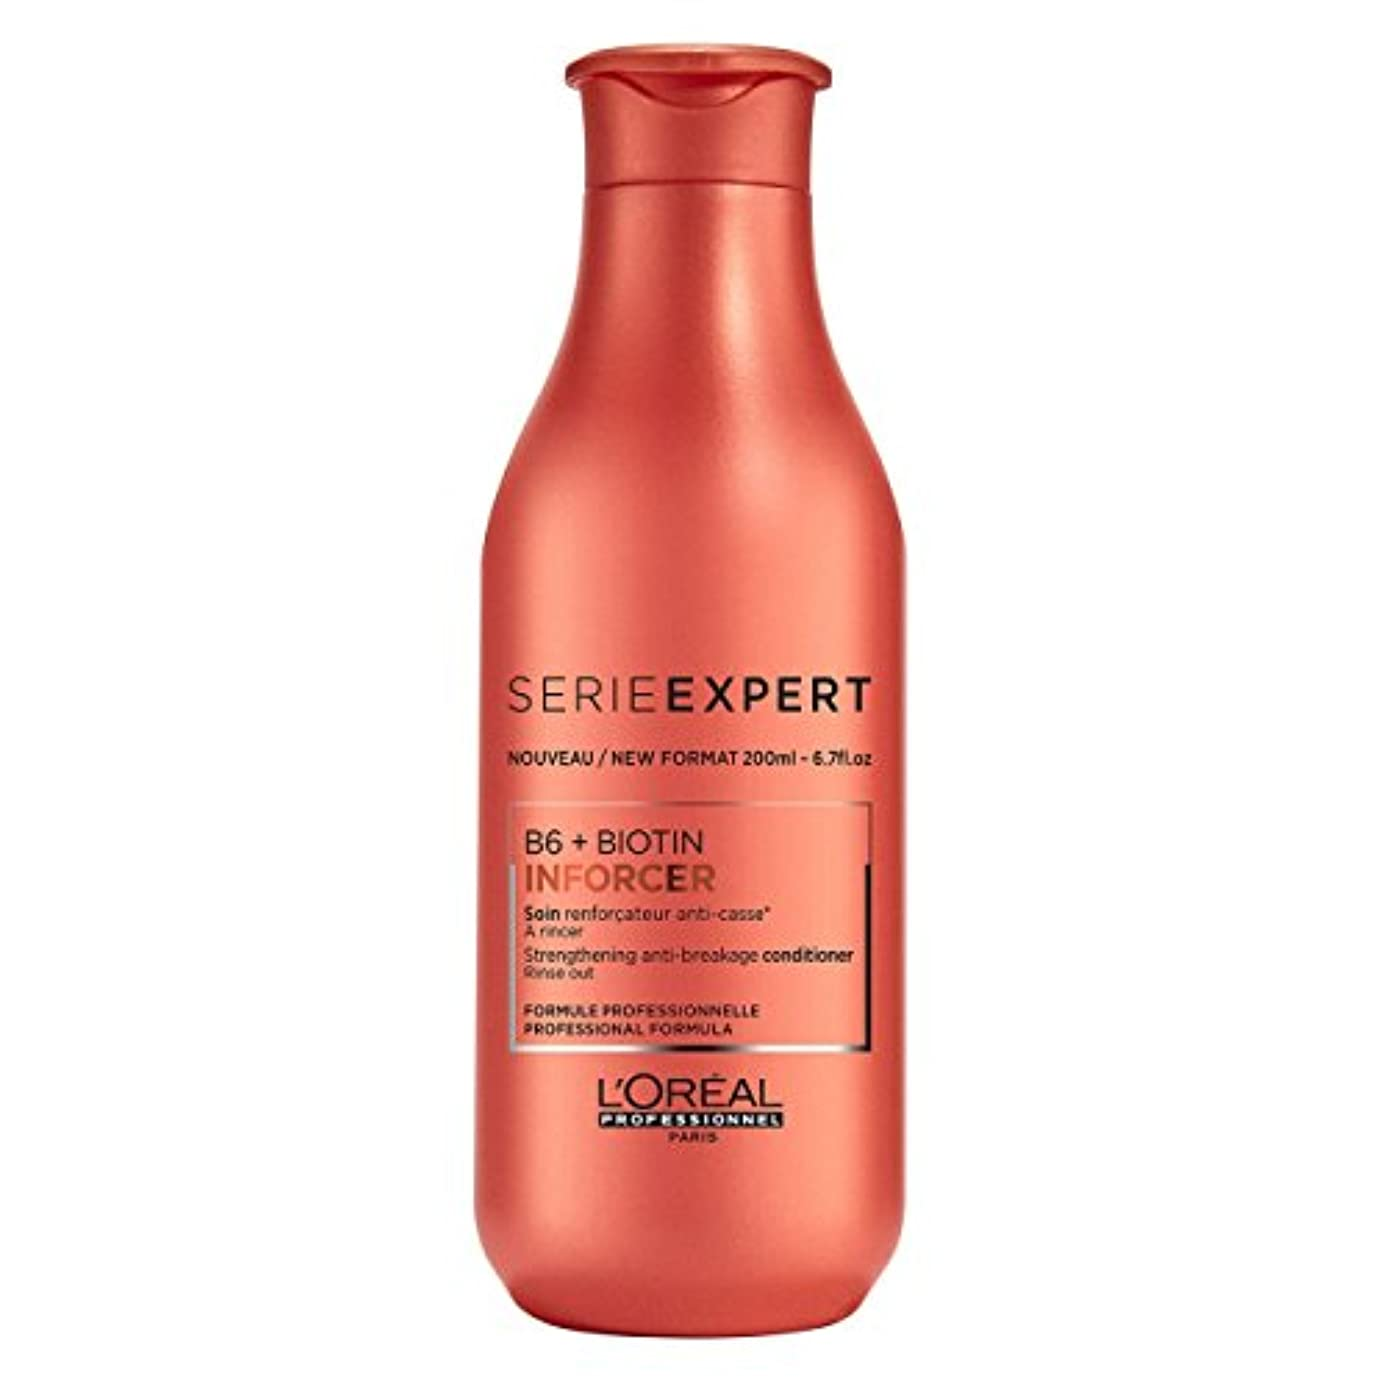 チキンり定刻L'Oreal Serie Expert B6 + Biotin INFORCER Strengthening Anti-Breakage Conditioner 200 ml [並行輸入品]